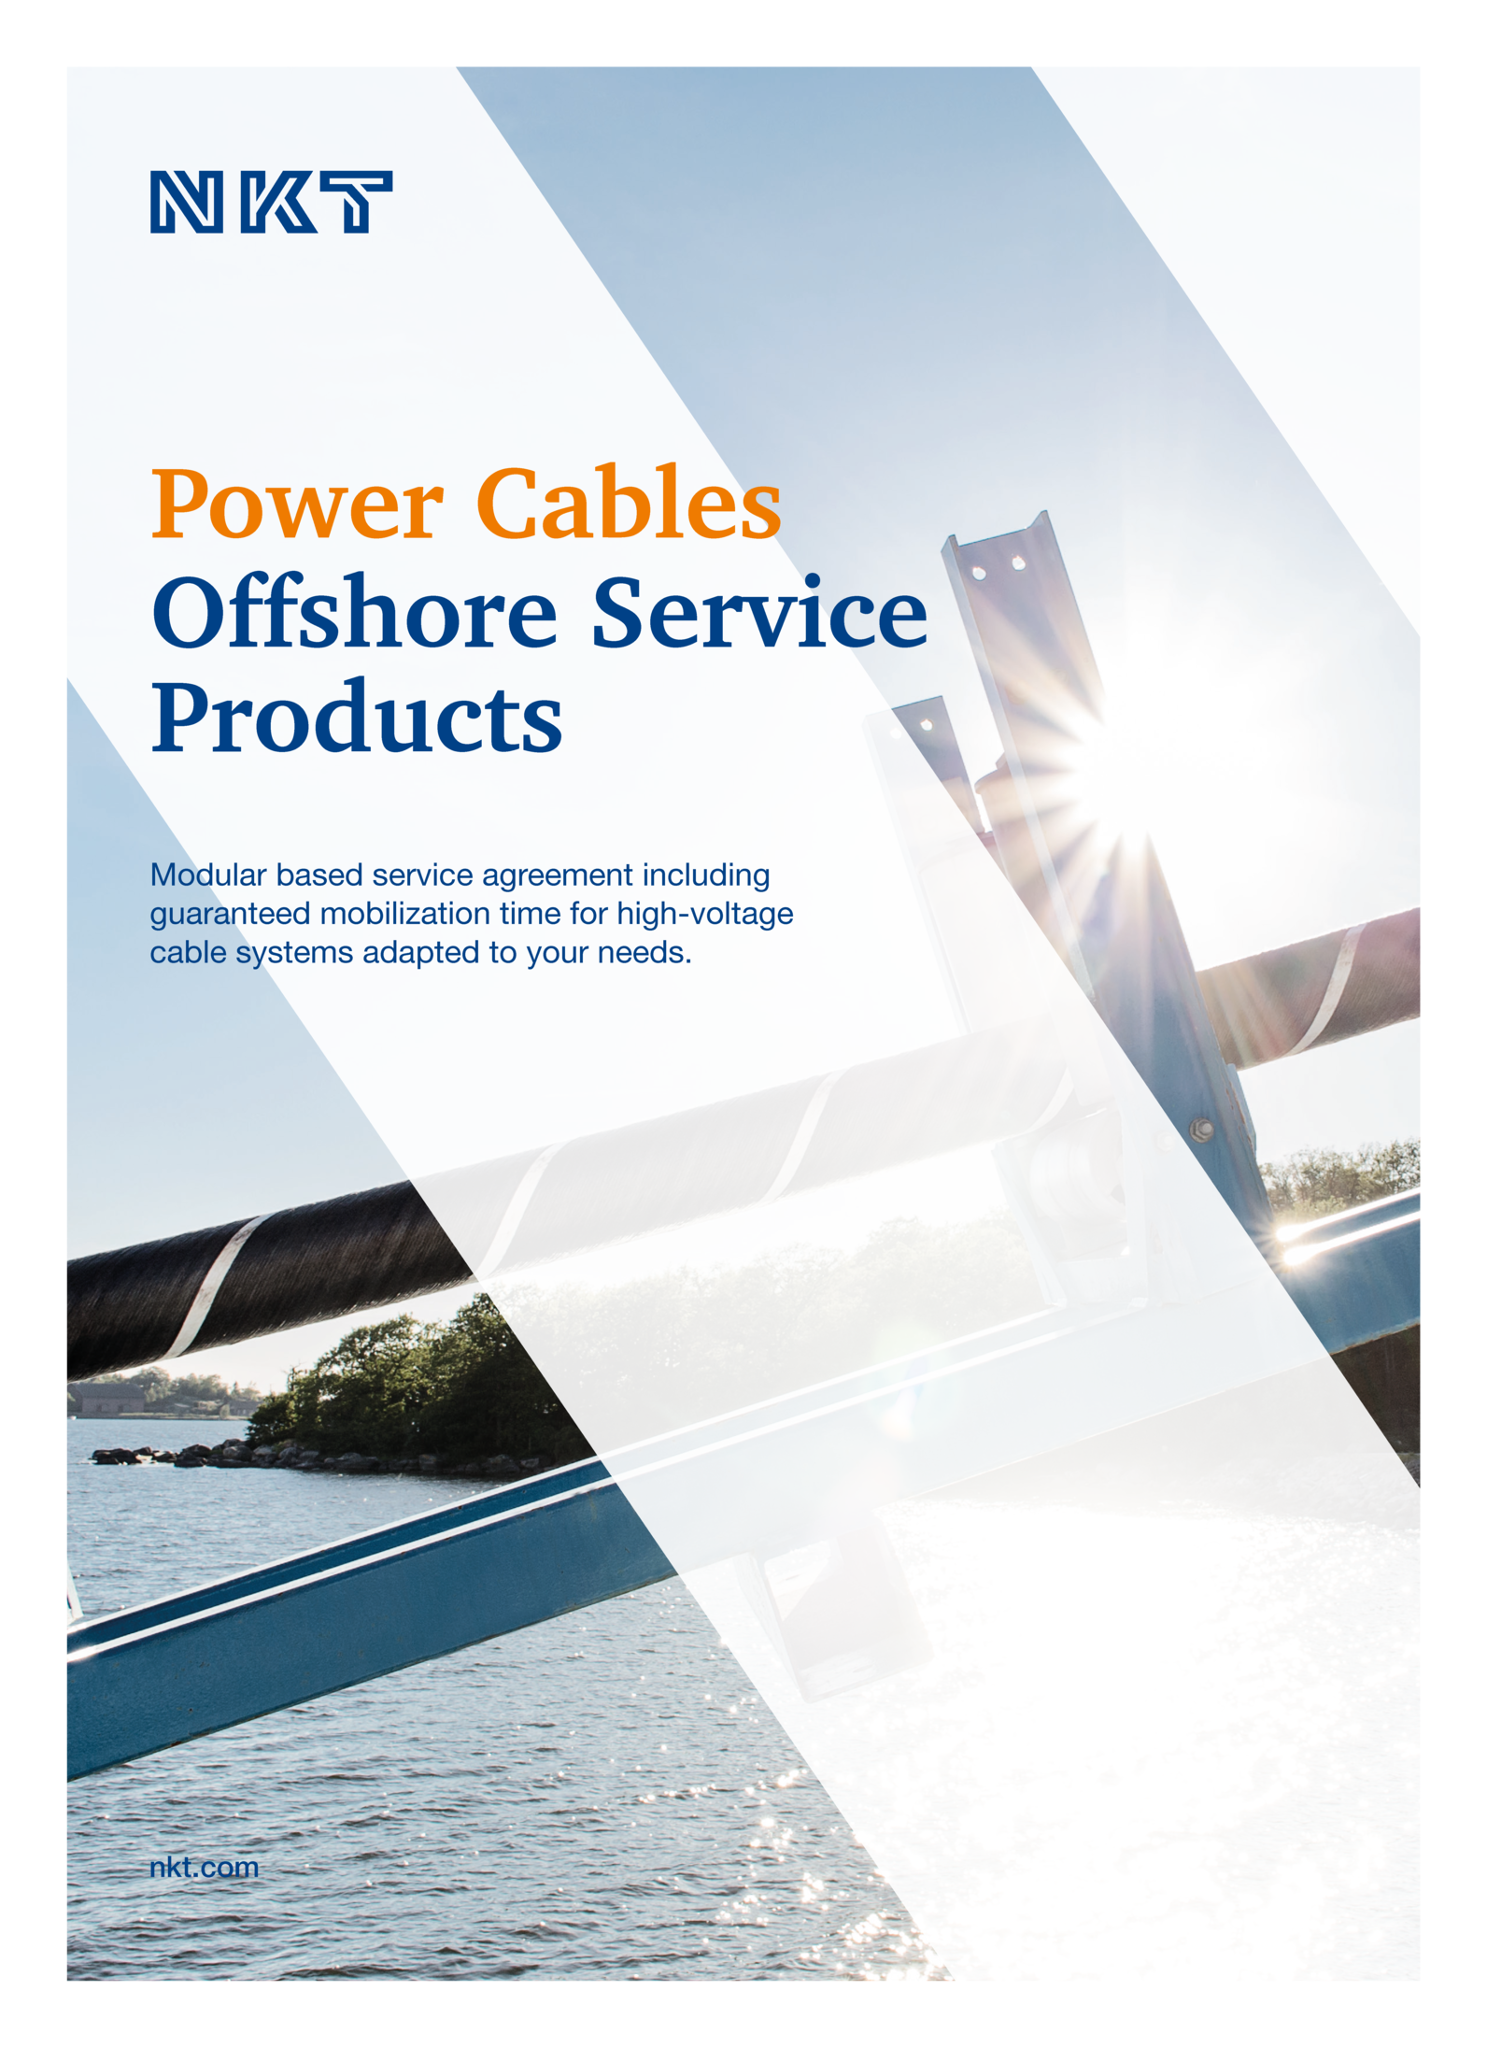 NKT_cable-service_Offshore-Brochure.pdf